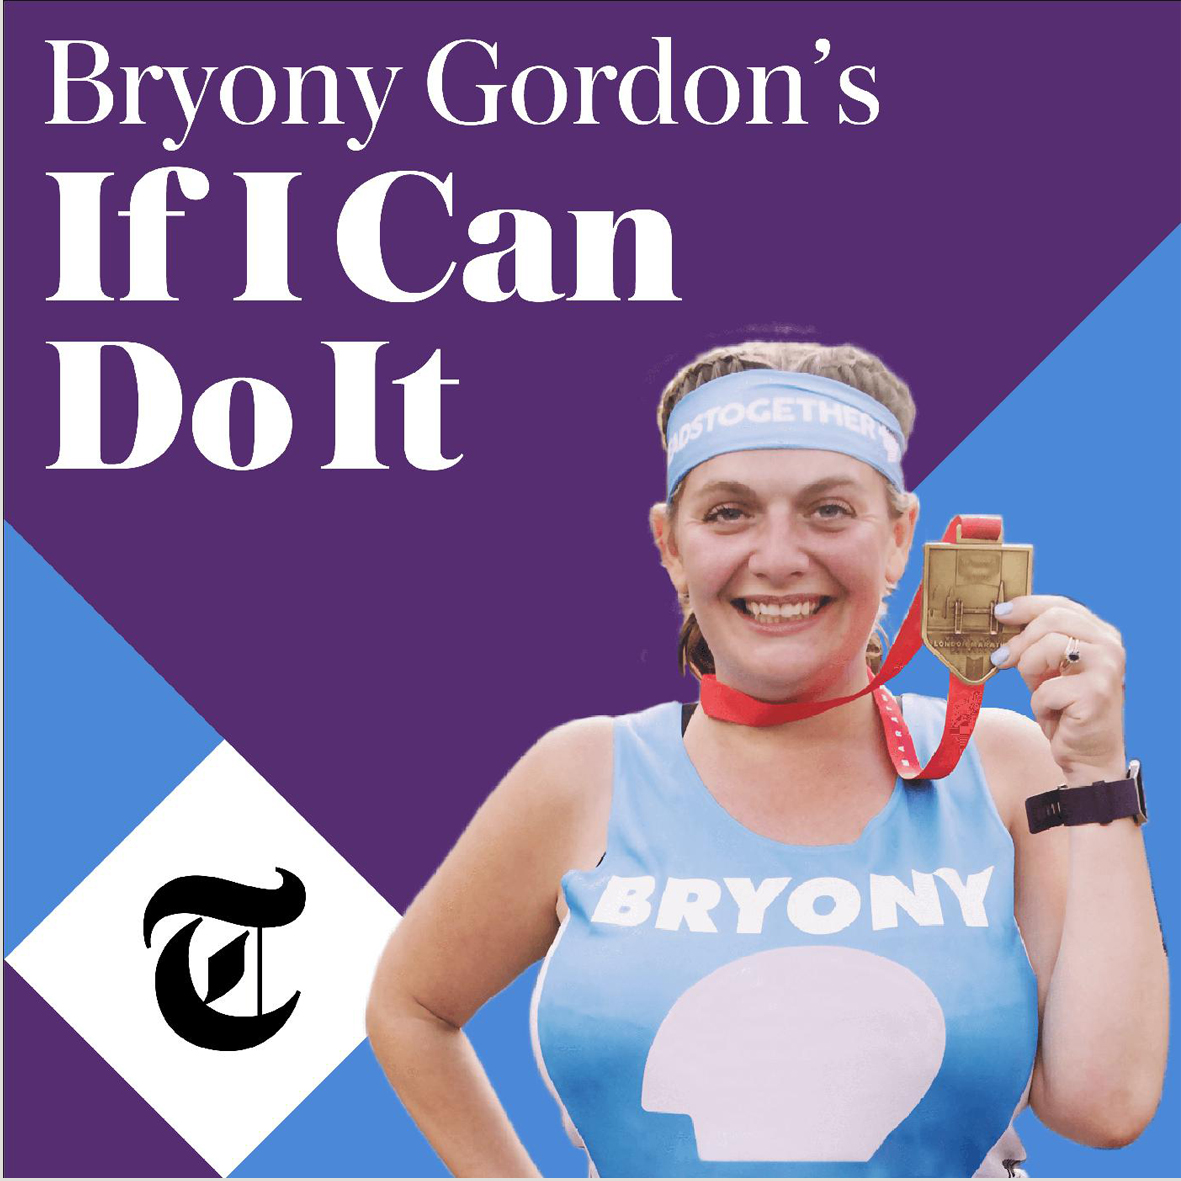 If I can Do it by Bryony Gordon Podcast